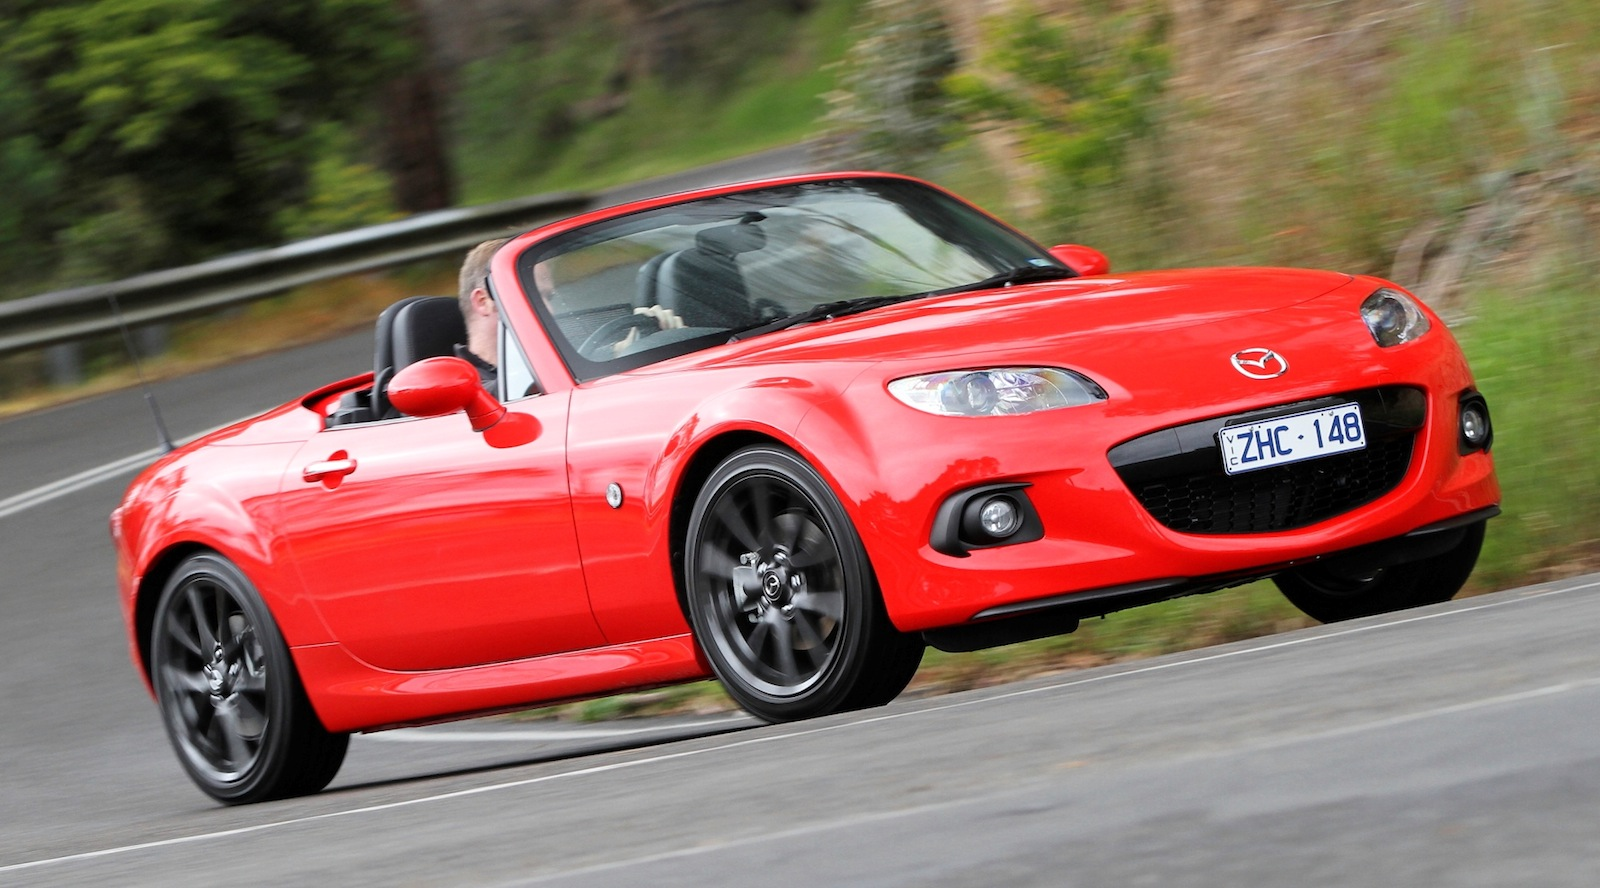 Mazda MX-5 Miata Club Edition